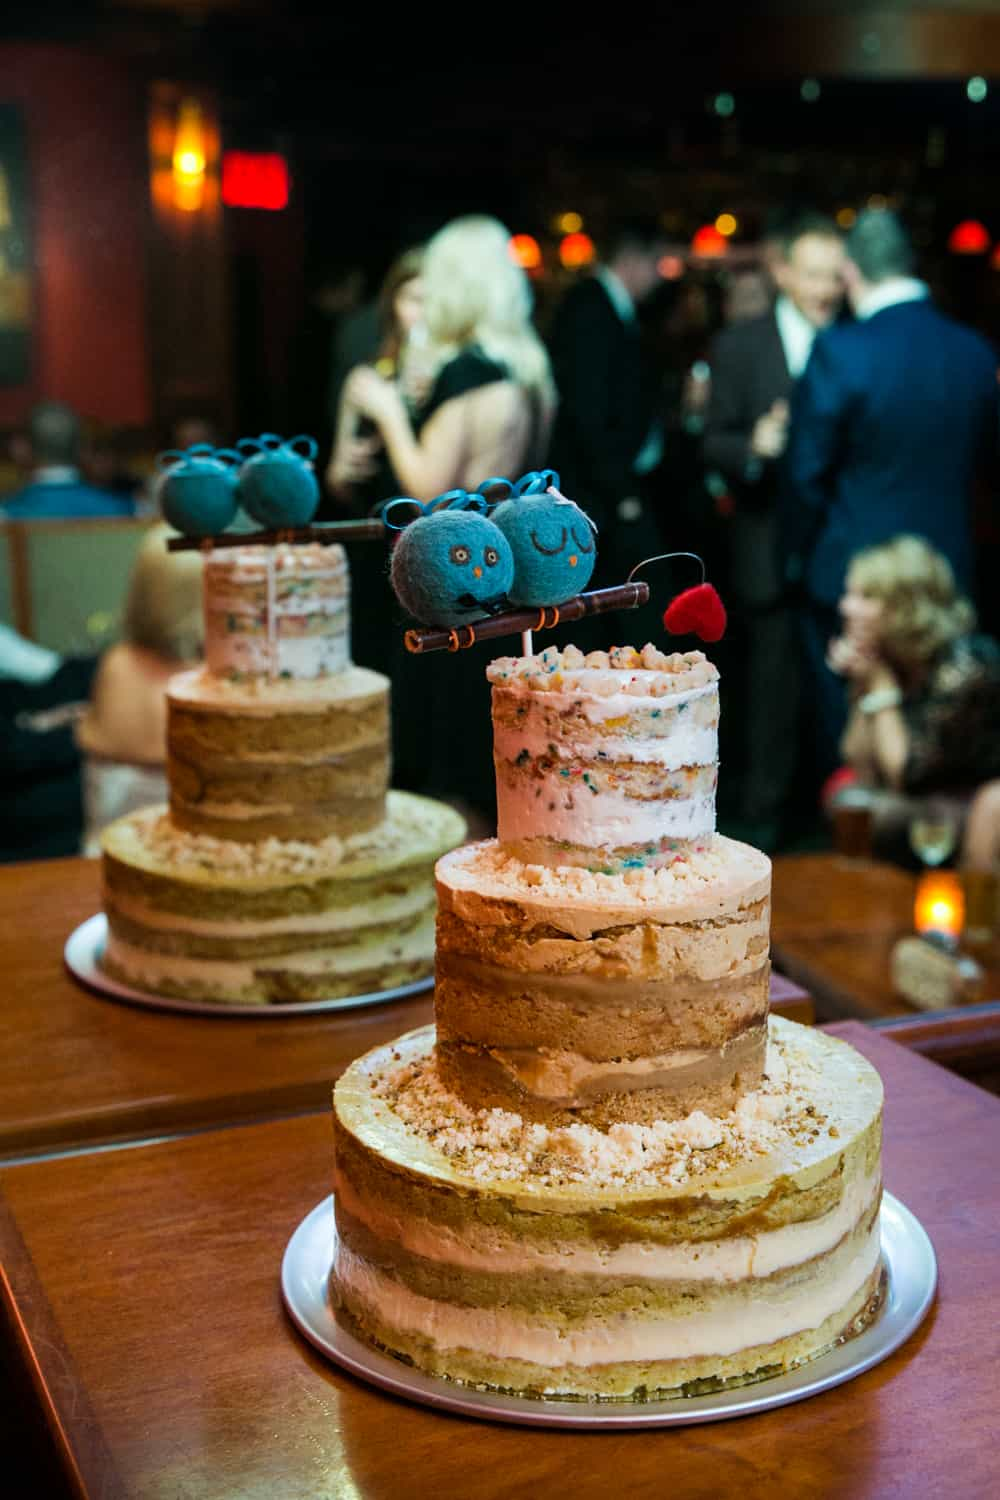 Wedding cake with blue bird topper at a Bergdorf Goodman wedding reception